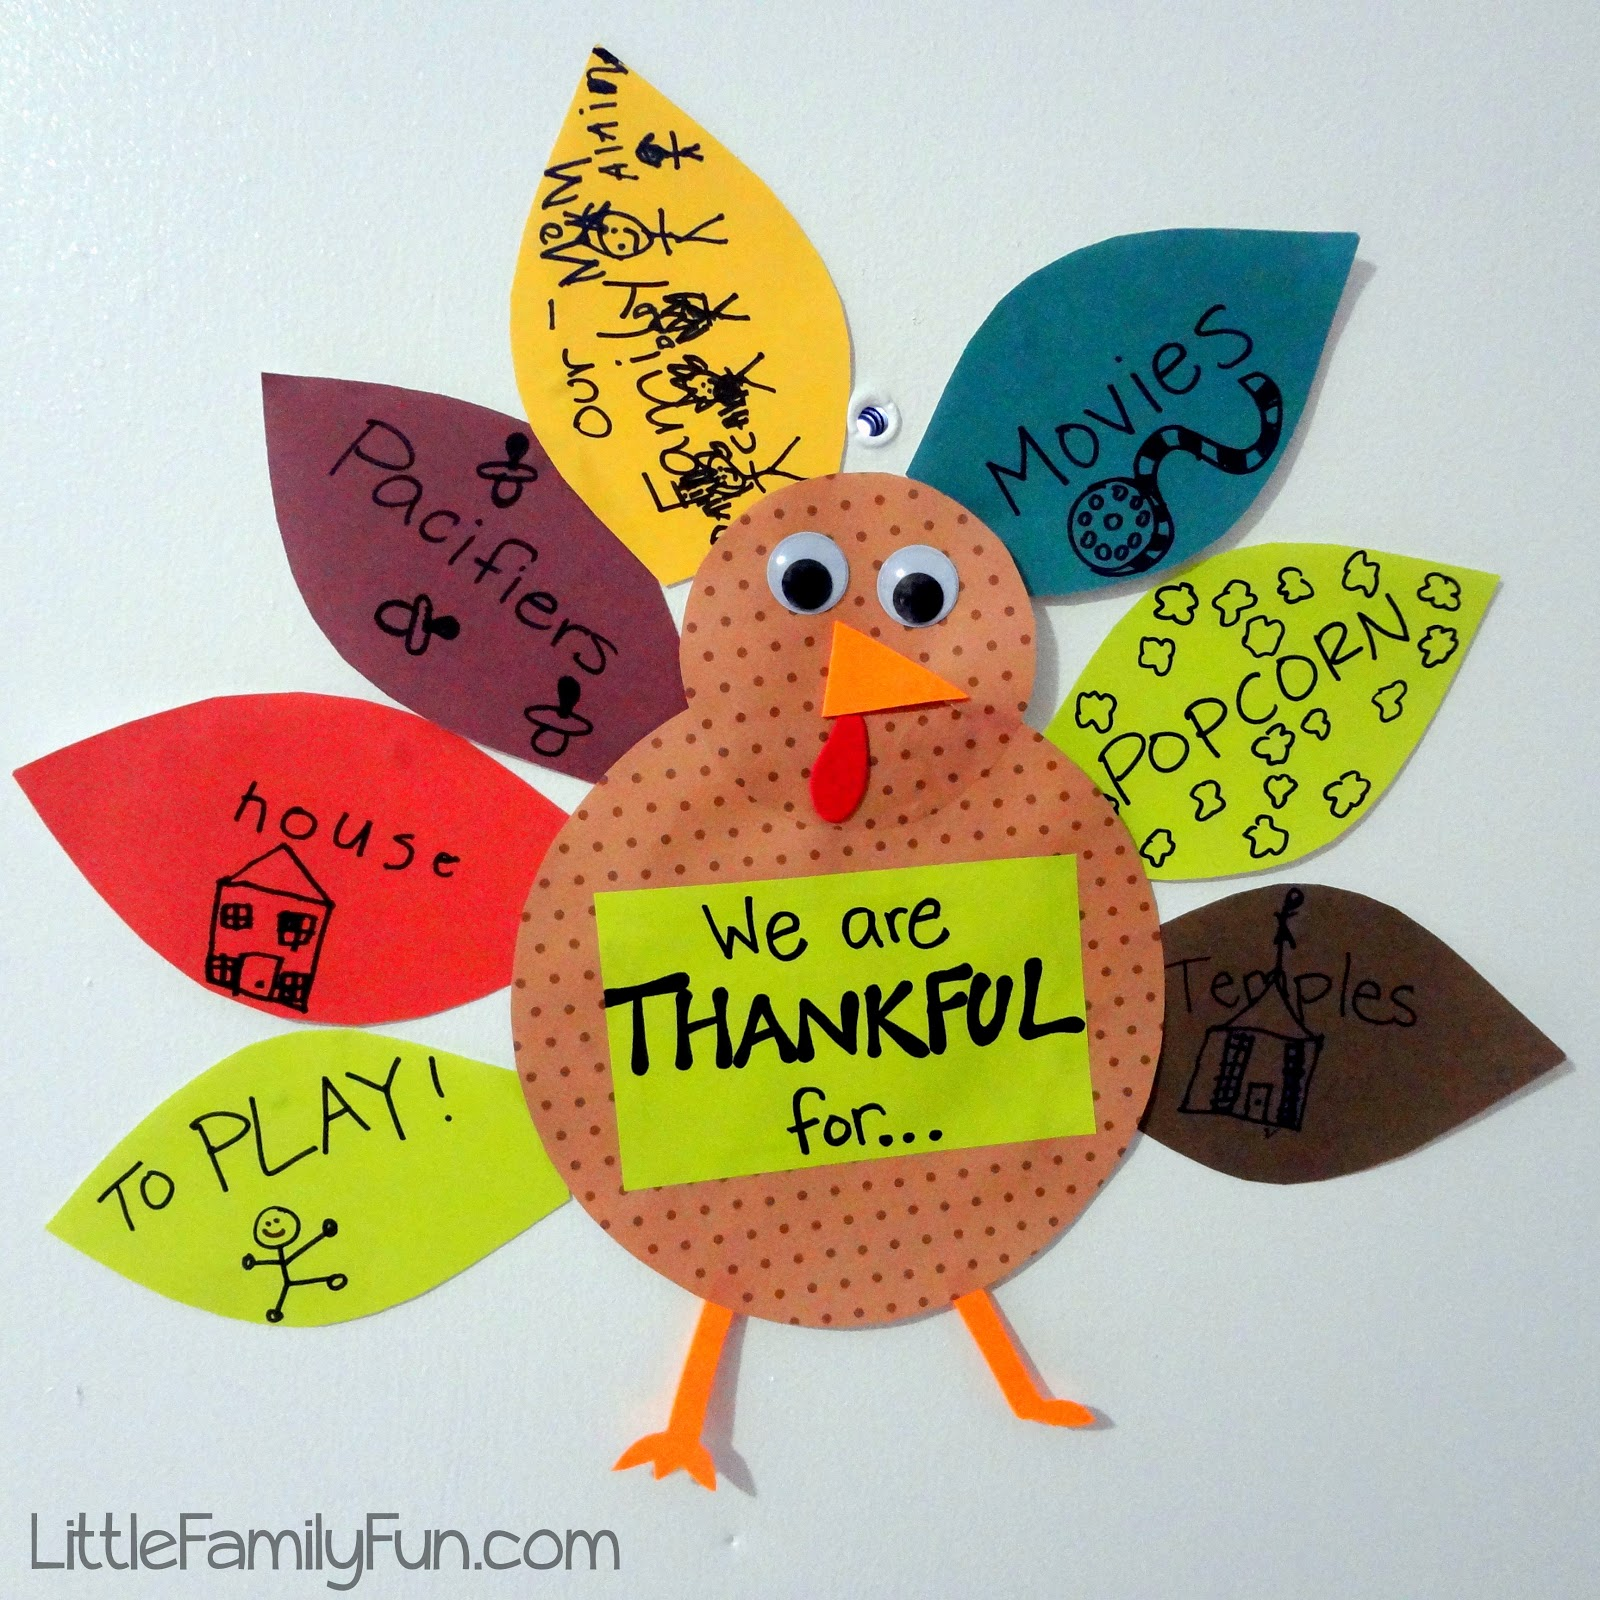 Gratitude turkey 2012 thanksgiving tradition for Thankful crafts for kids